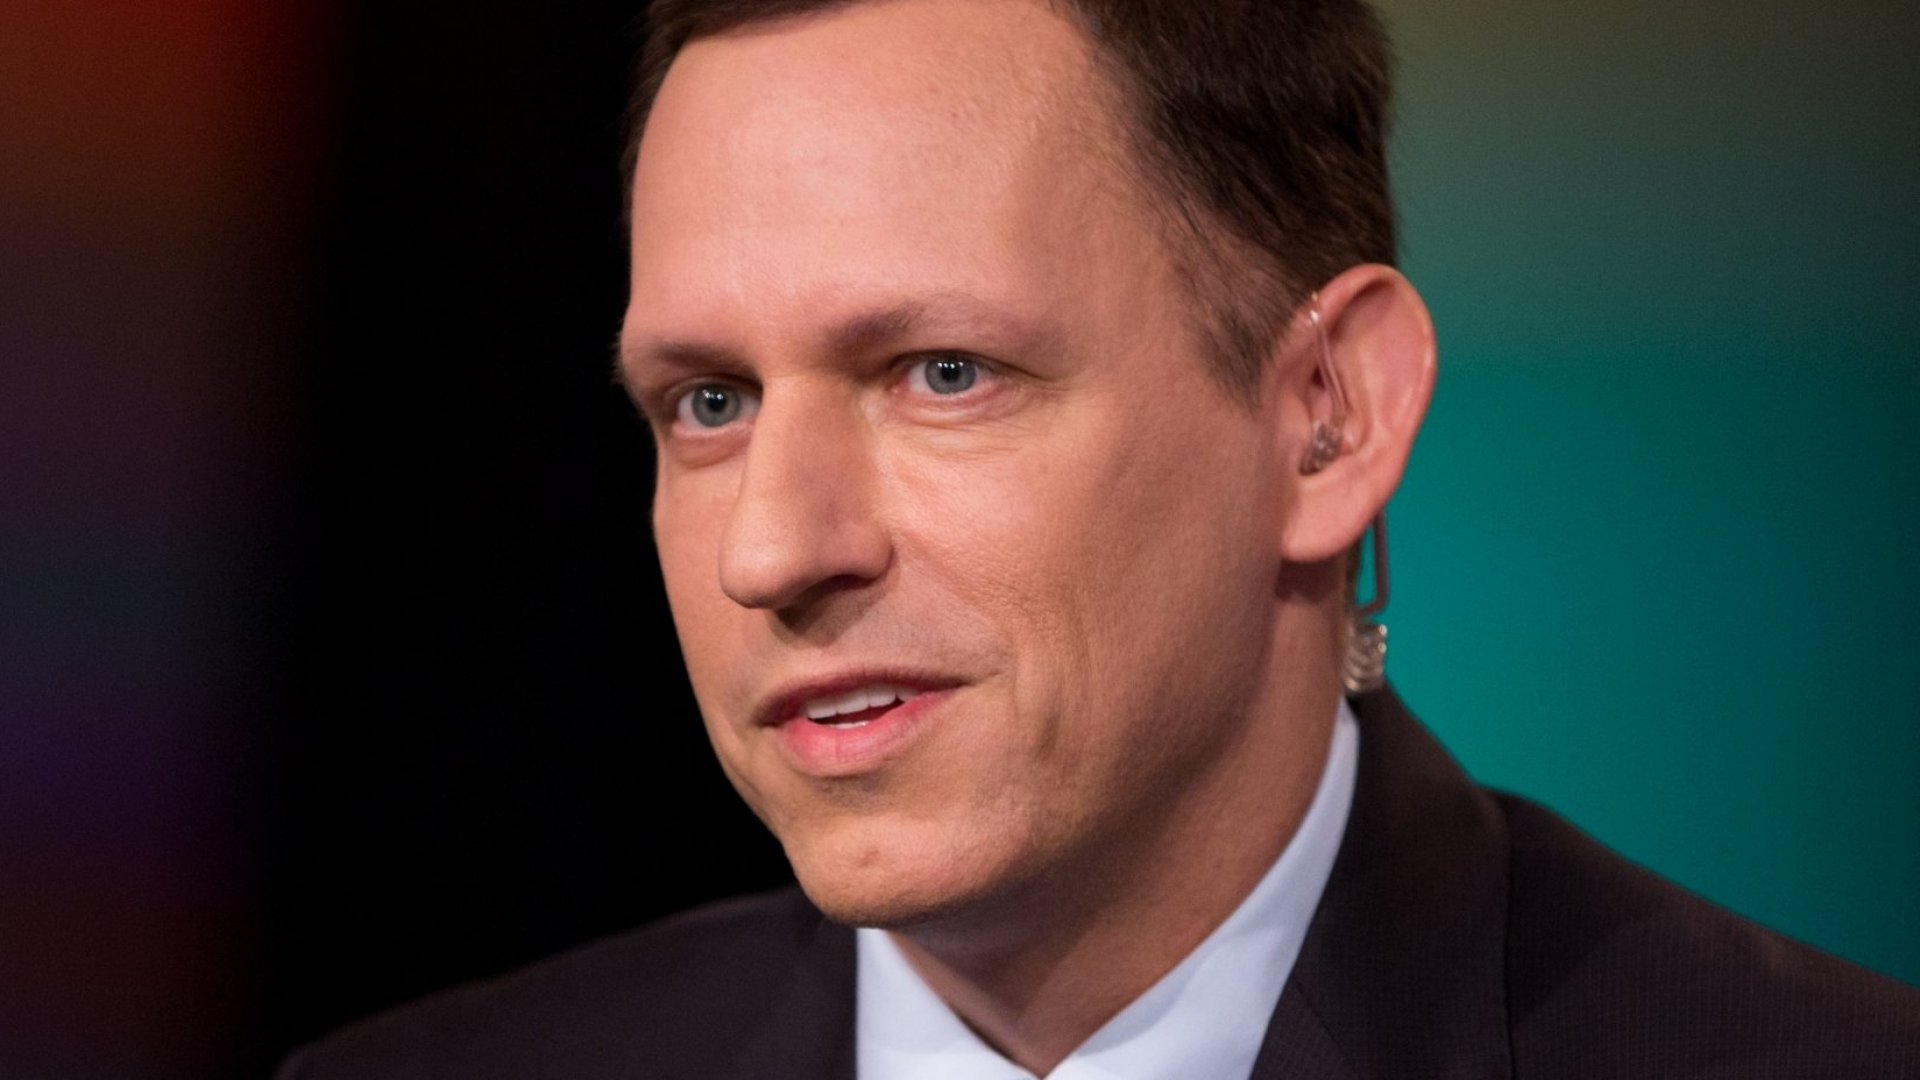 'Peter Thiel Is No Longer Affiliated With Y Combinator'